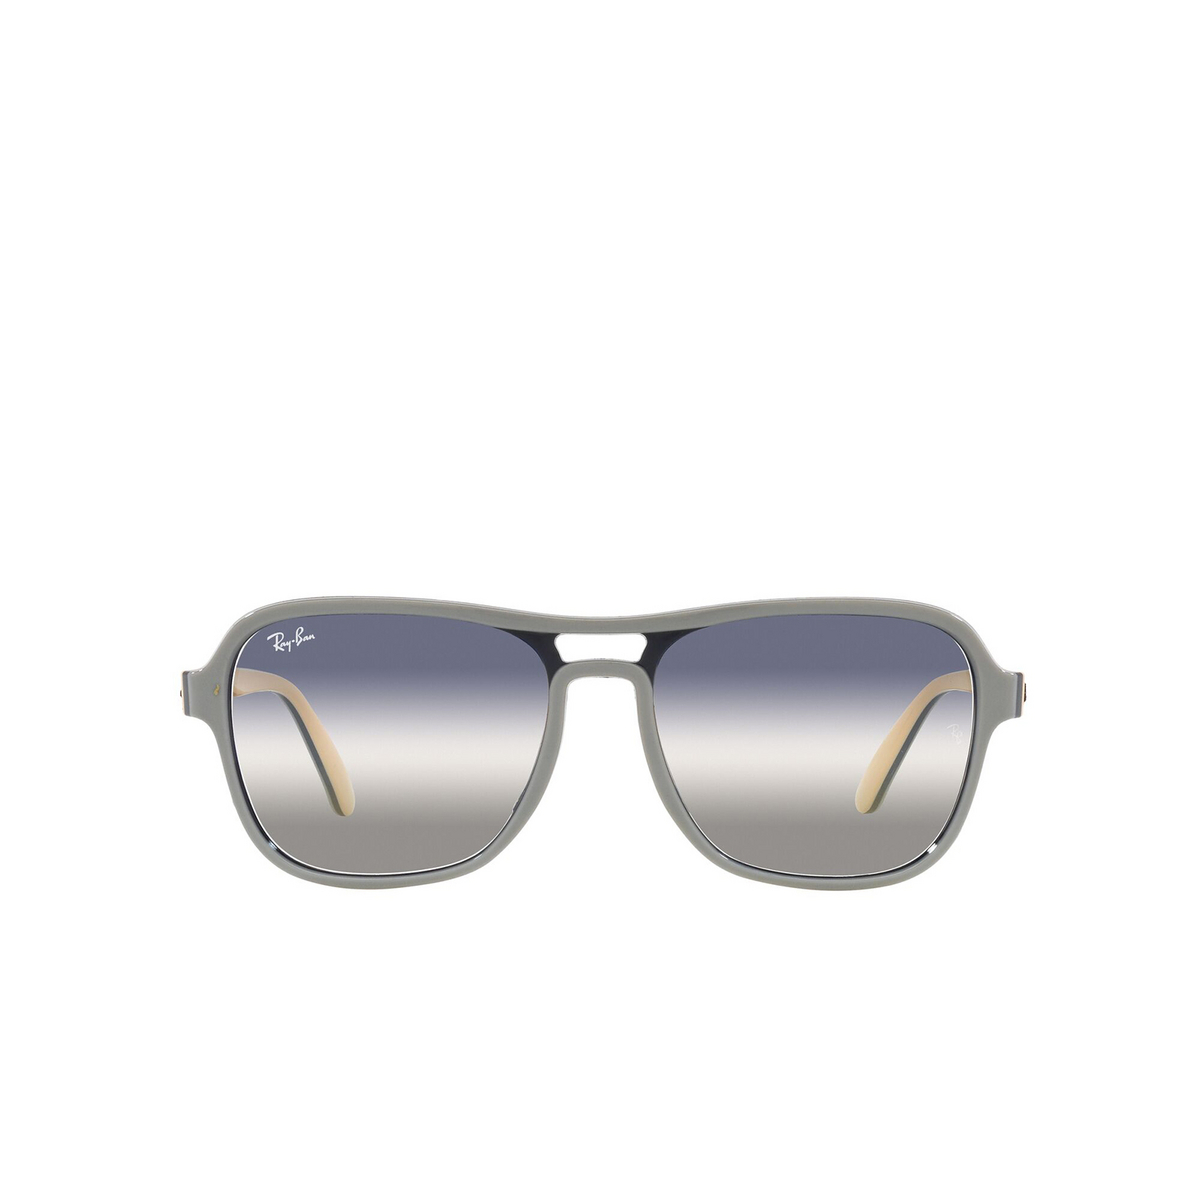 Ray-Ban® Square Sunglasses: State Side RB4356 color Light Gray Blu Light Brown 6550GF - front view.